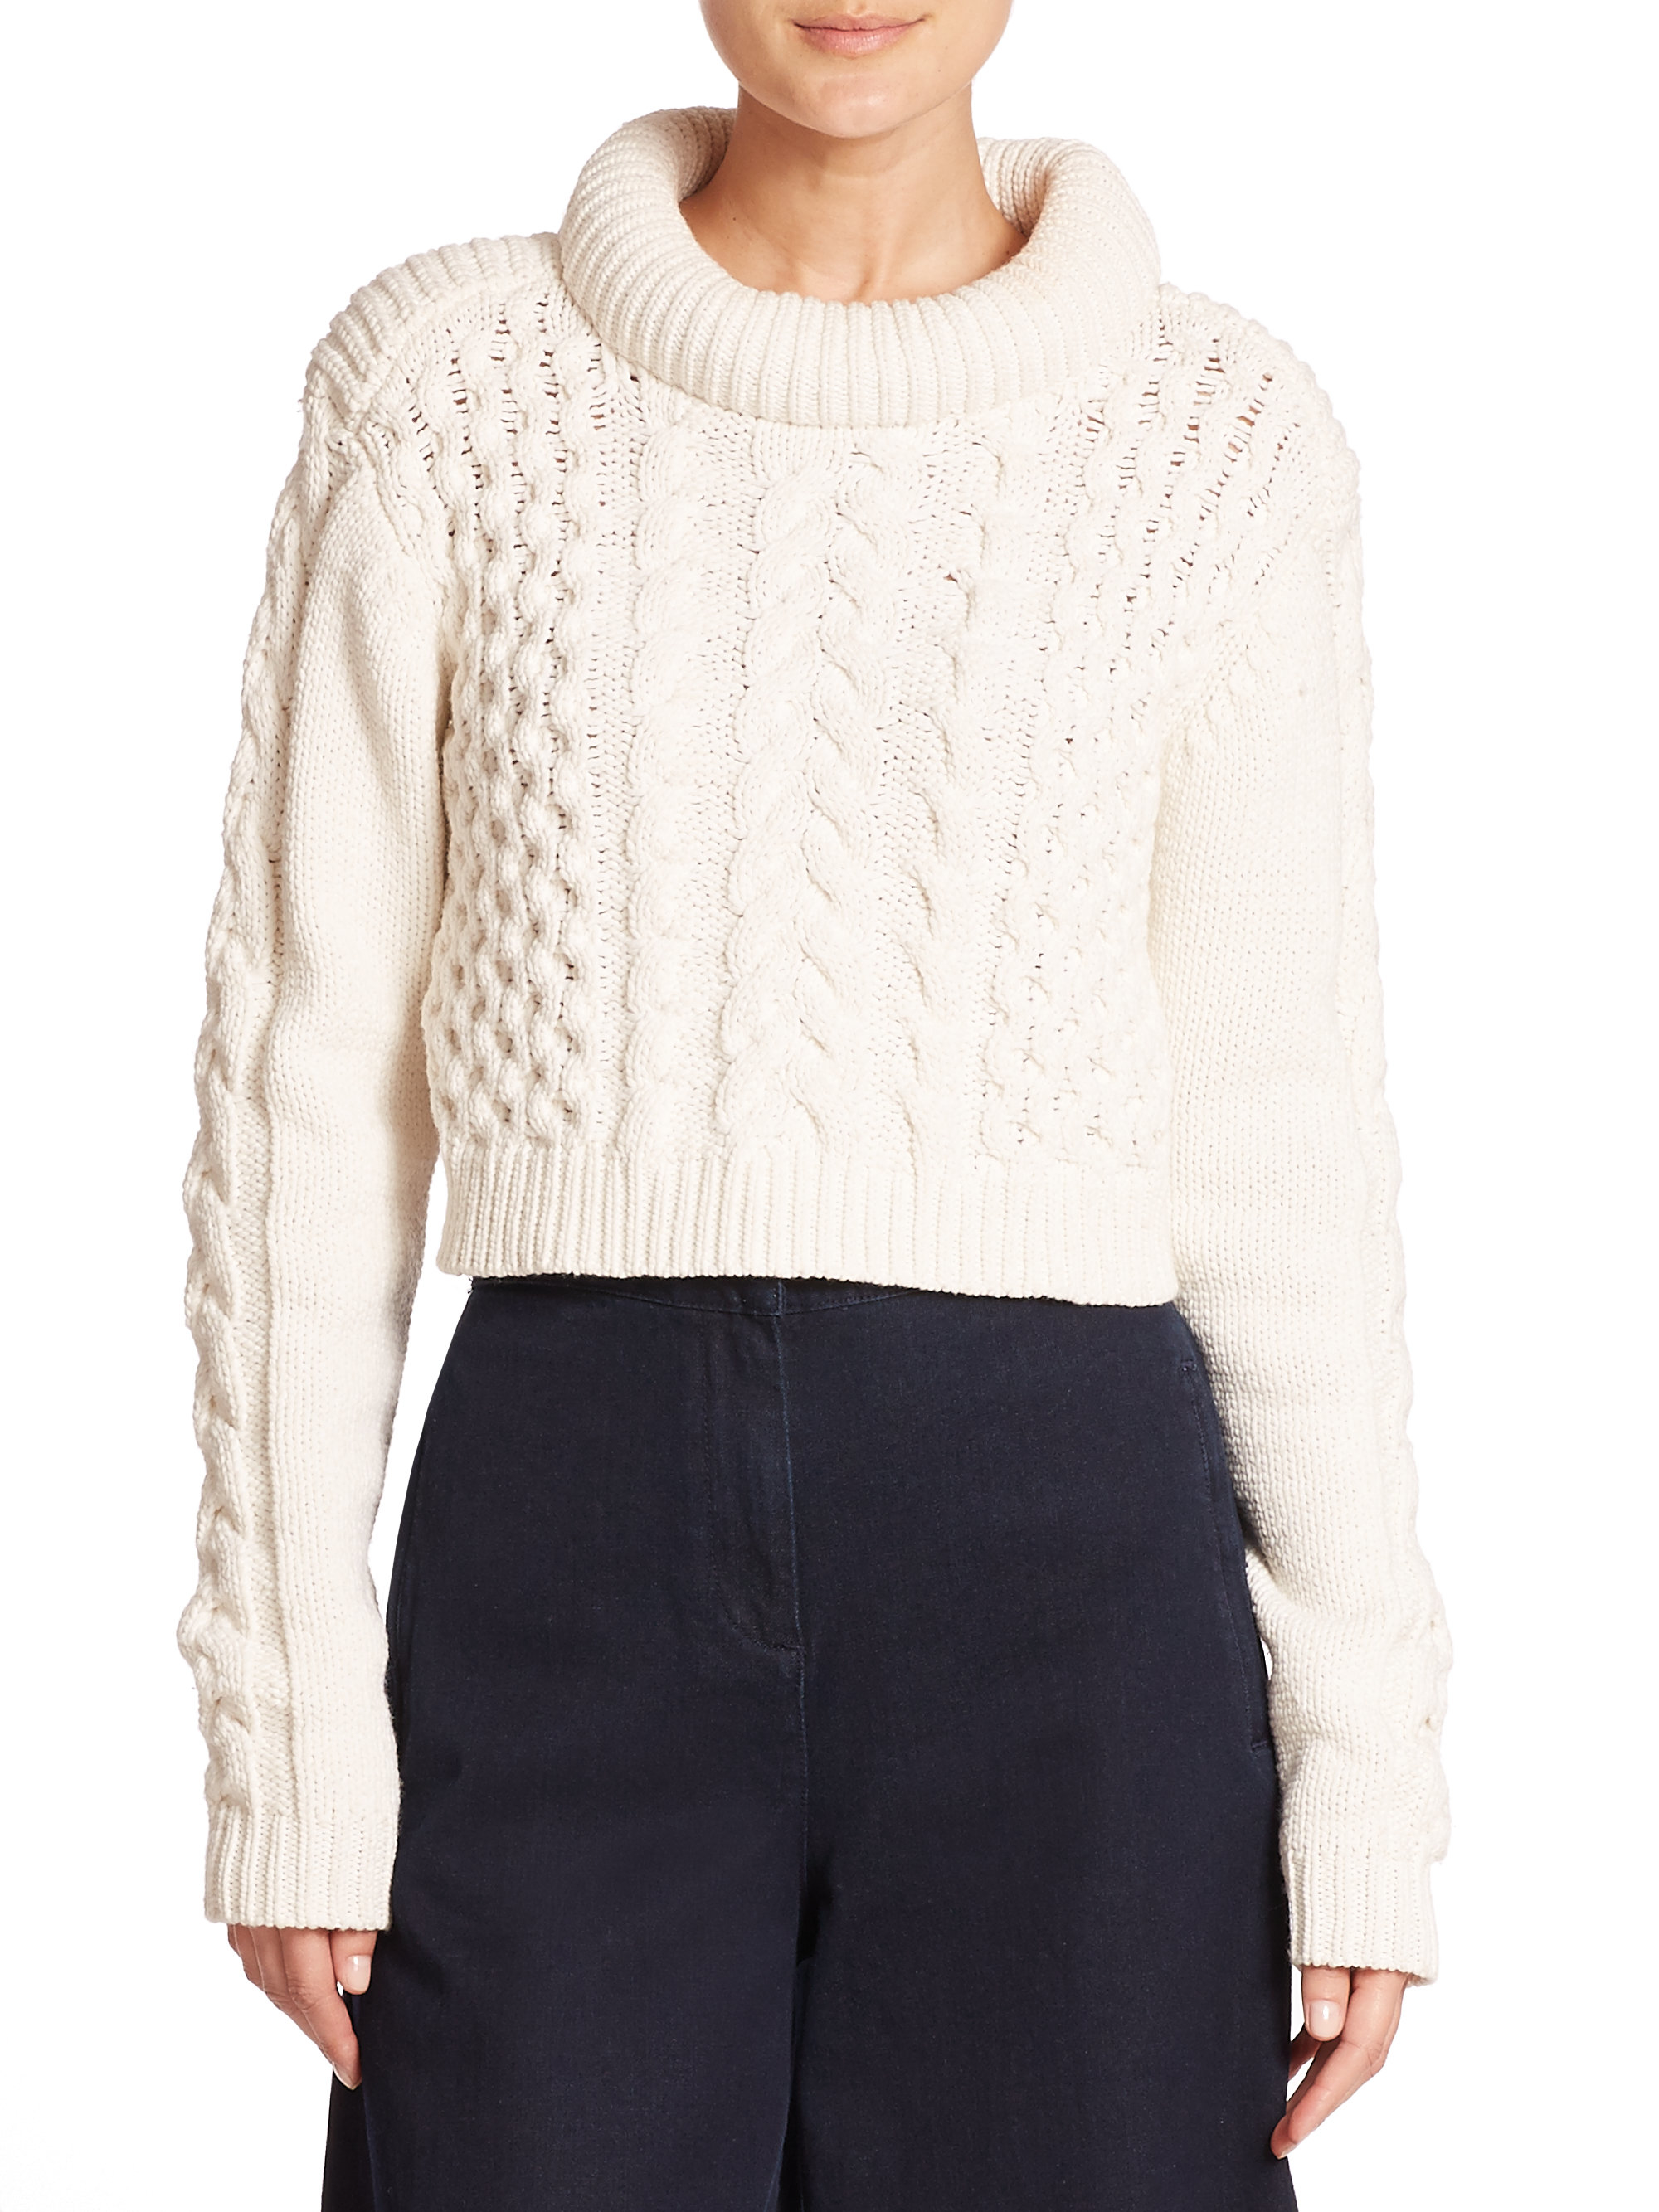 Tibi Chunky Cable Knit Cropped Sweater in White Lyst